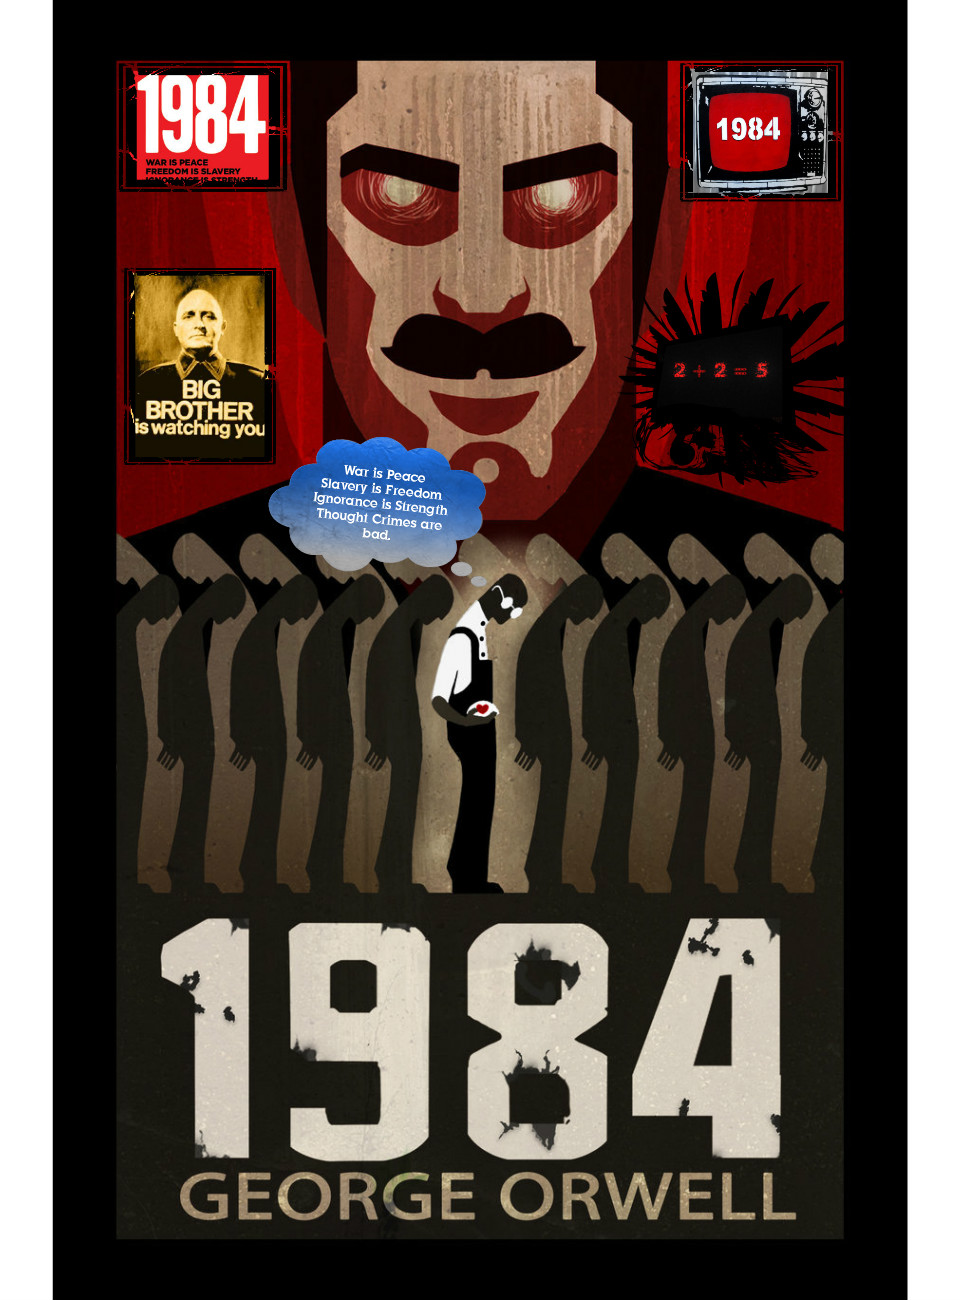 Is there sexism in the novel 1984 by George Orwell?